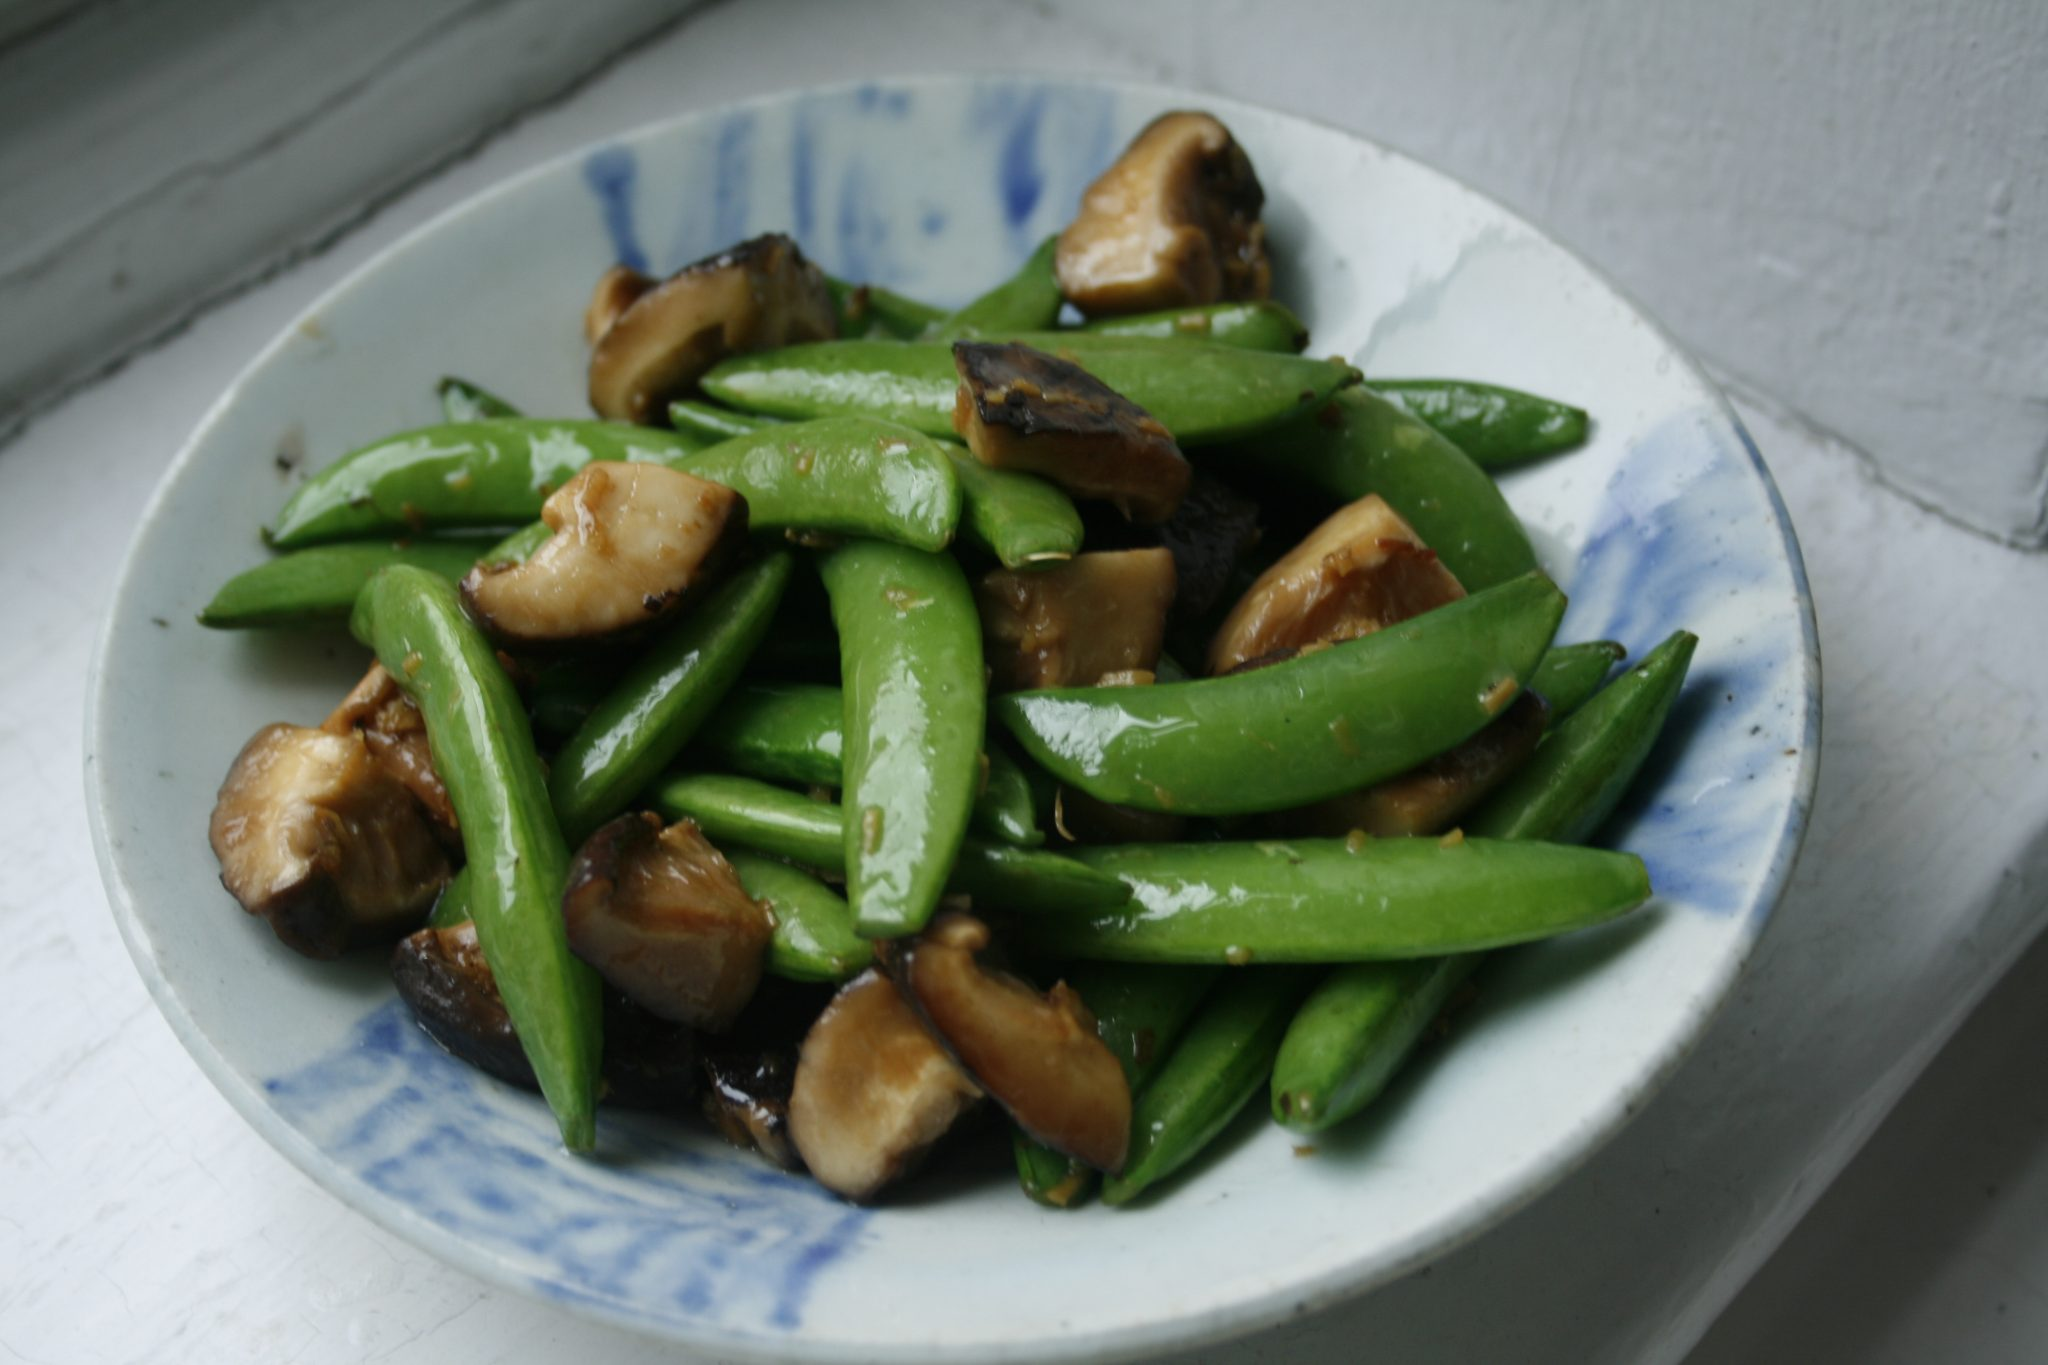 Stir-Fried Sugar Snaps with Shiitake Mushrooms